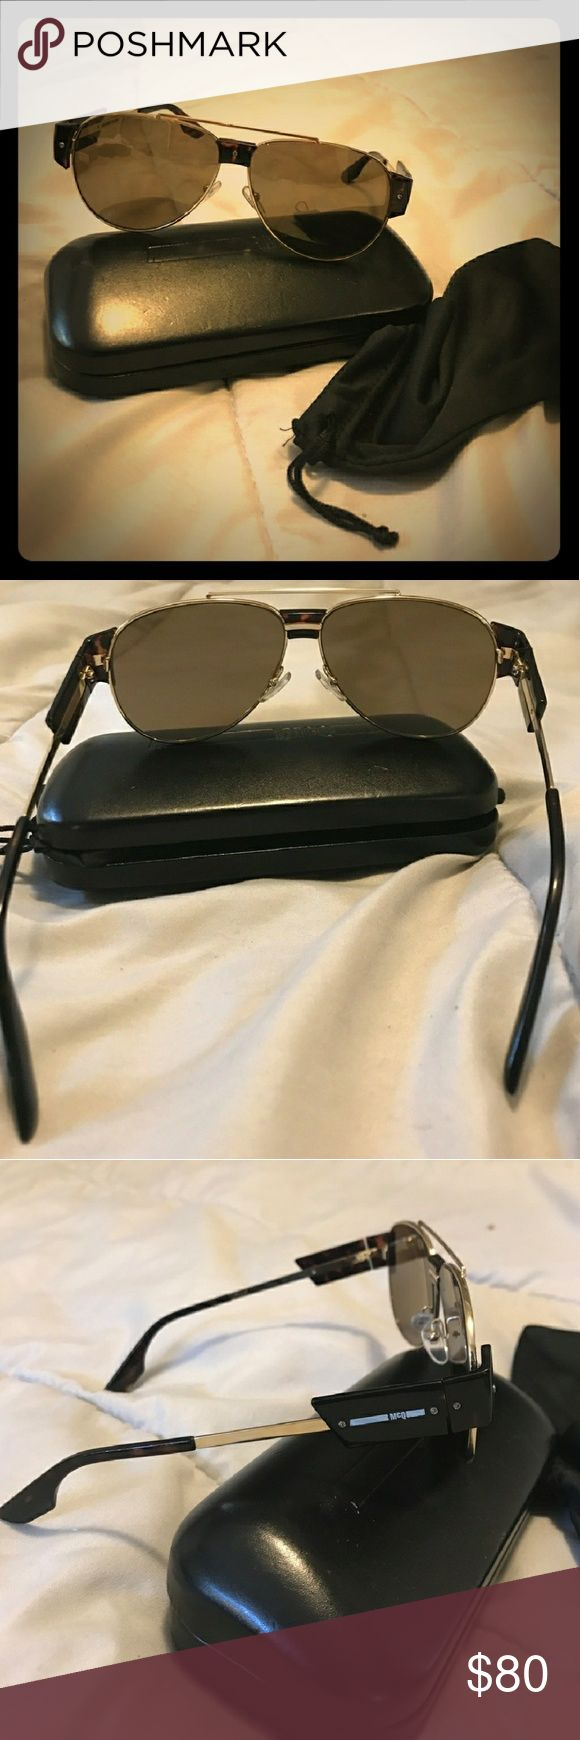 Alexander McQueen Sunglasses Comes With original case, and cloth. Very very minute scratches almost unnoticeable.  Price is negotiable. Open to trade for a watch. Alexander McQueen Accessories Sunglasses